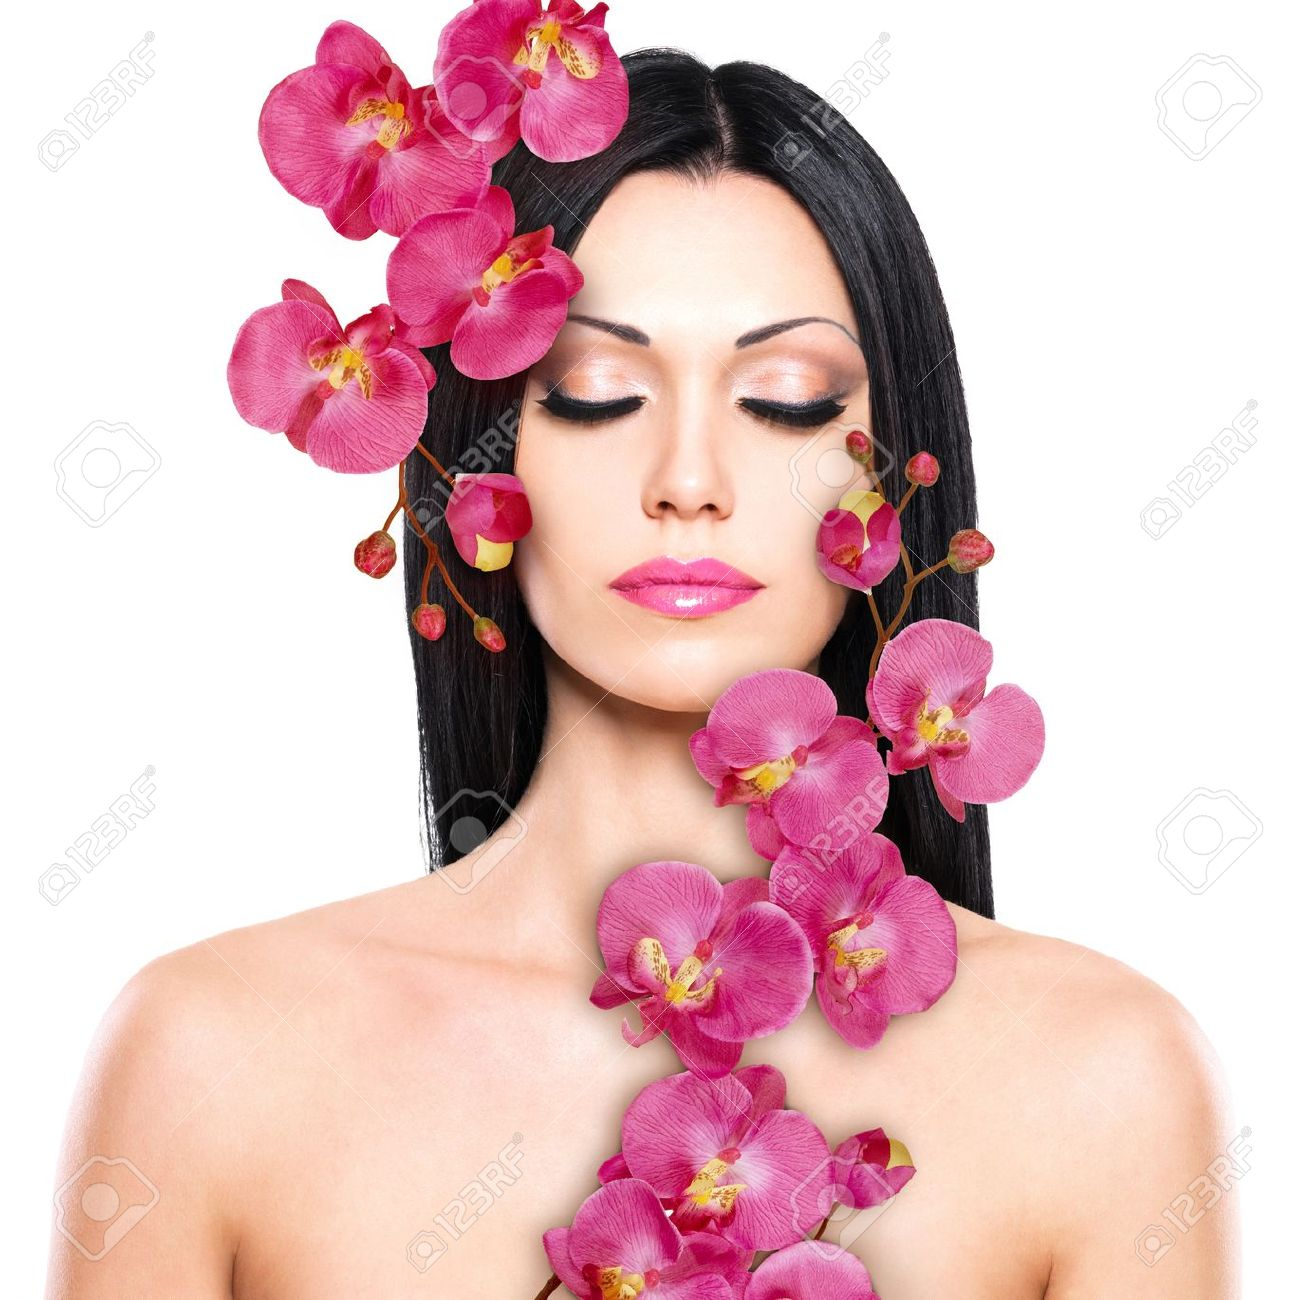 Young woman with beautiful face and fresh flowers skin care stock stock photo young woman with beautiful face and fresh flowers skin care concept izmirmasajfo